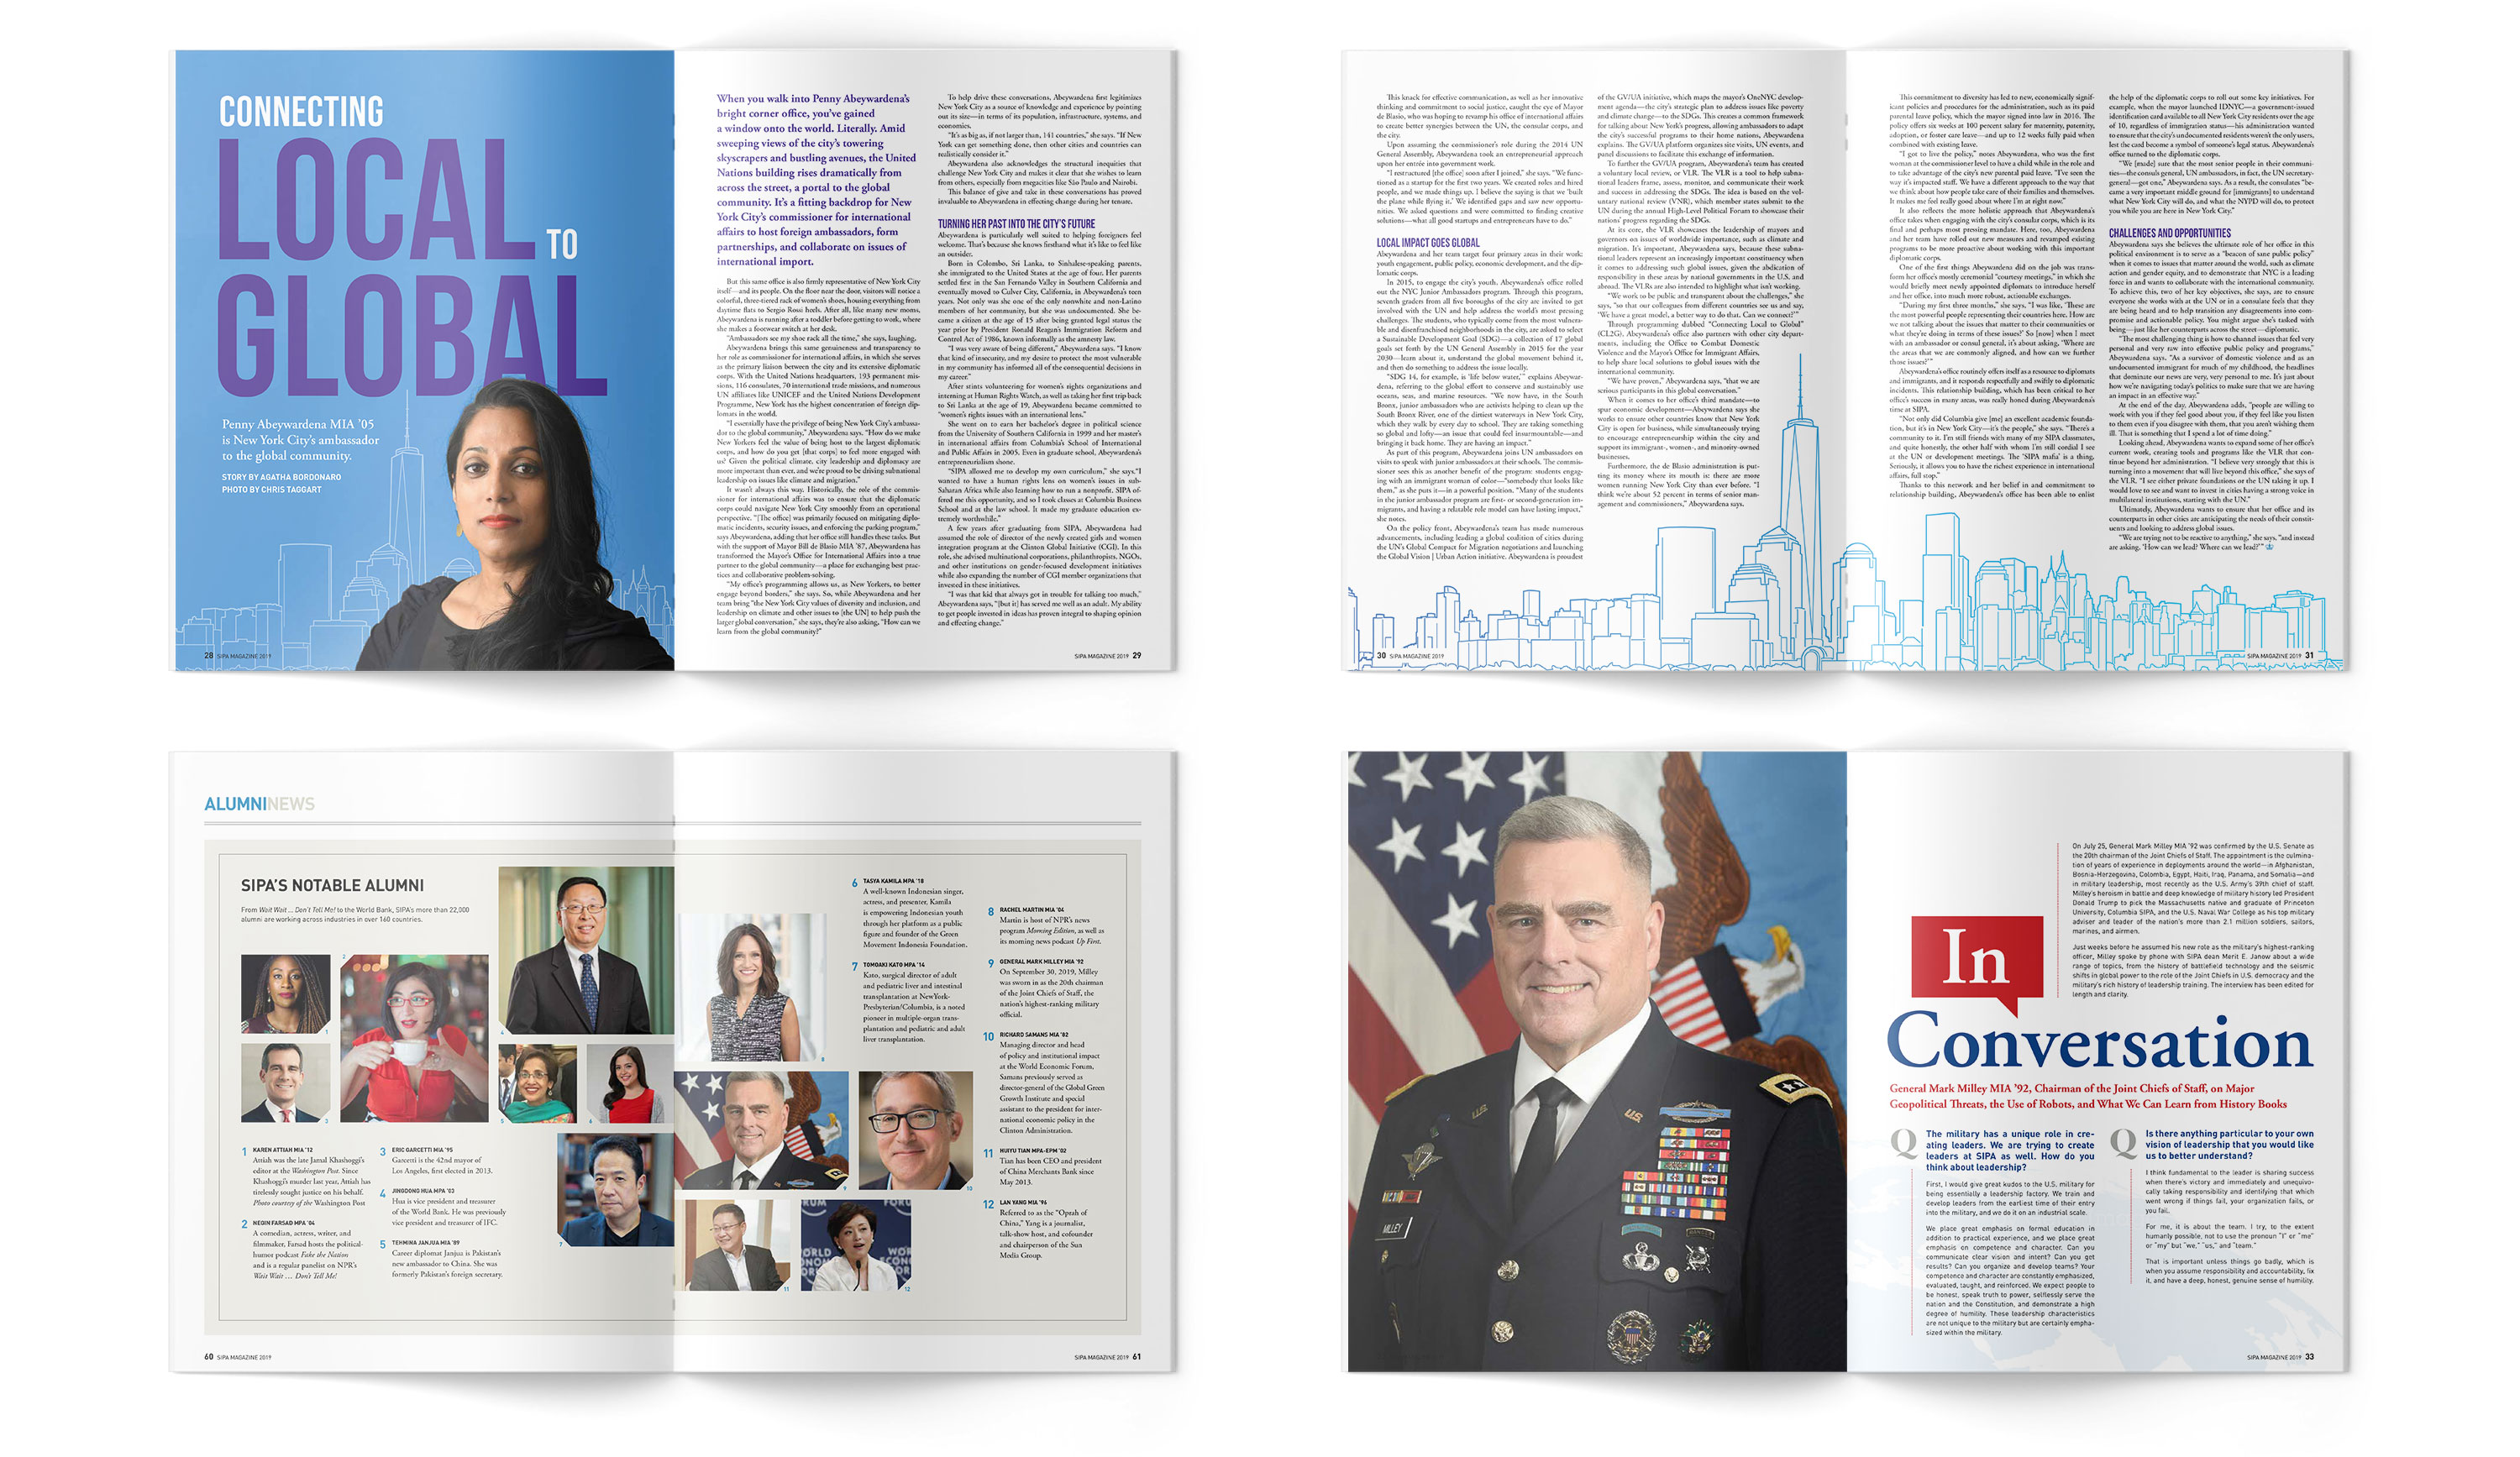 Sample spreads from SIPA Magazine, including Global feature, Notable Alumni news, and Conversation with Alumni feature.